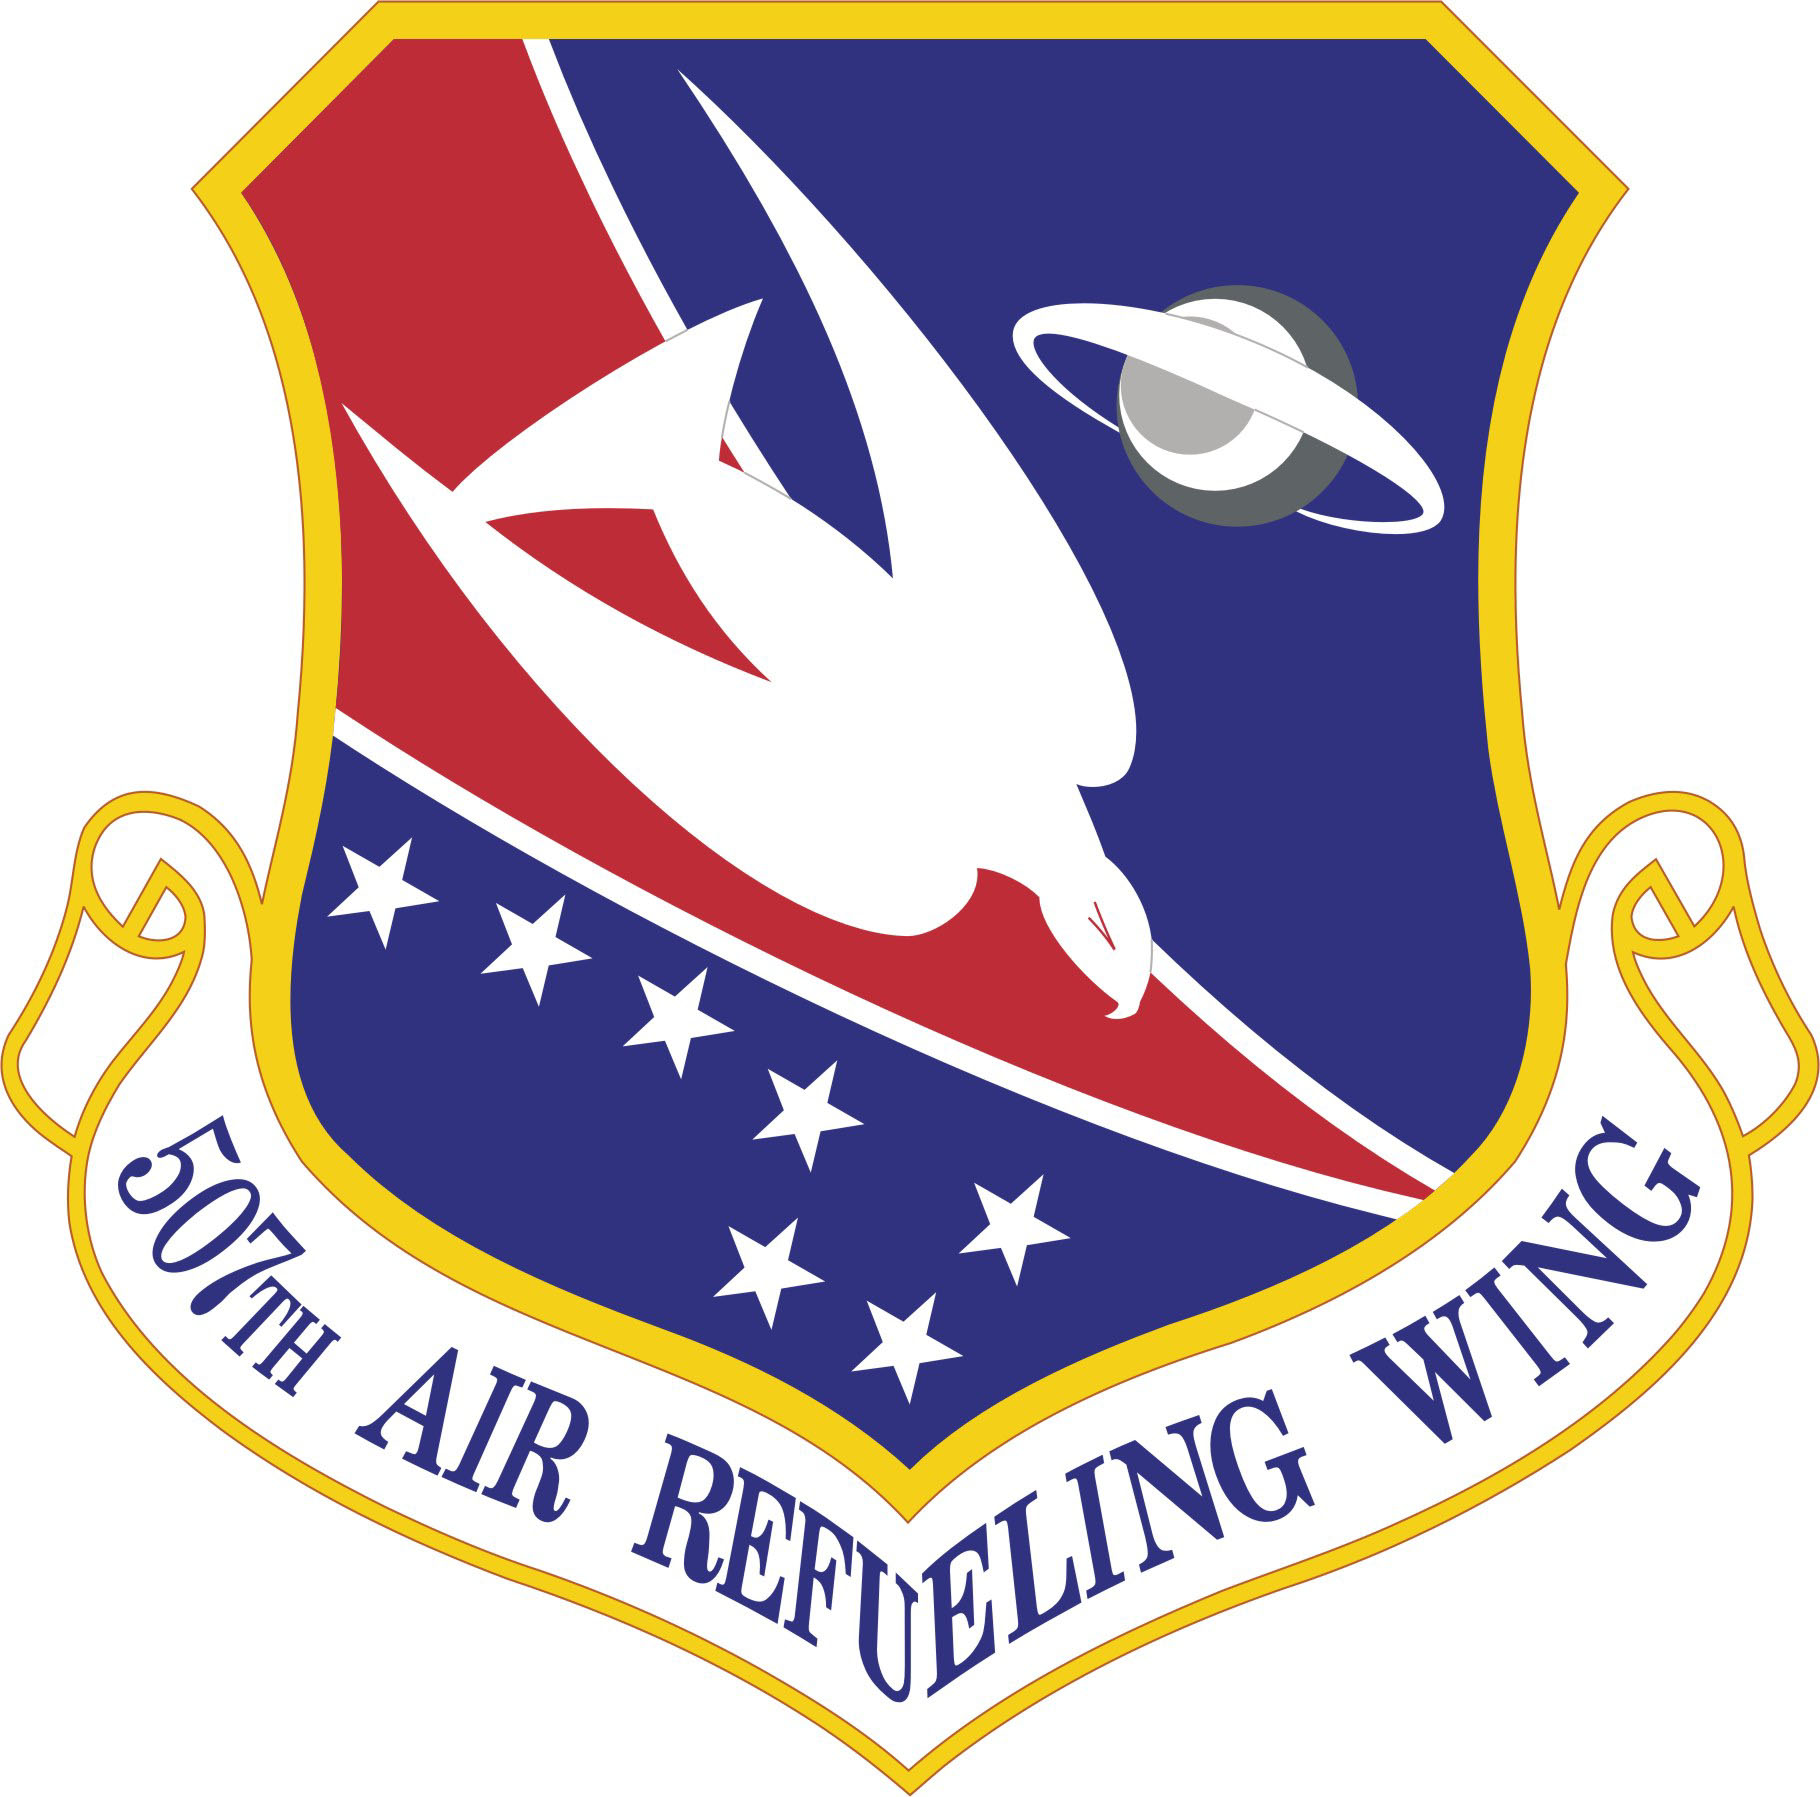 507th Air Refueling Wing > 507th Air Refueling Wing > Display.